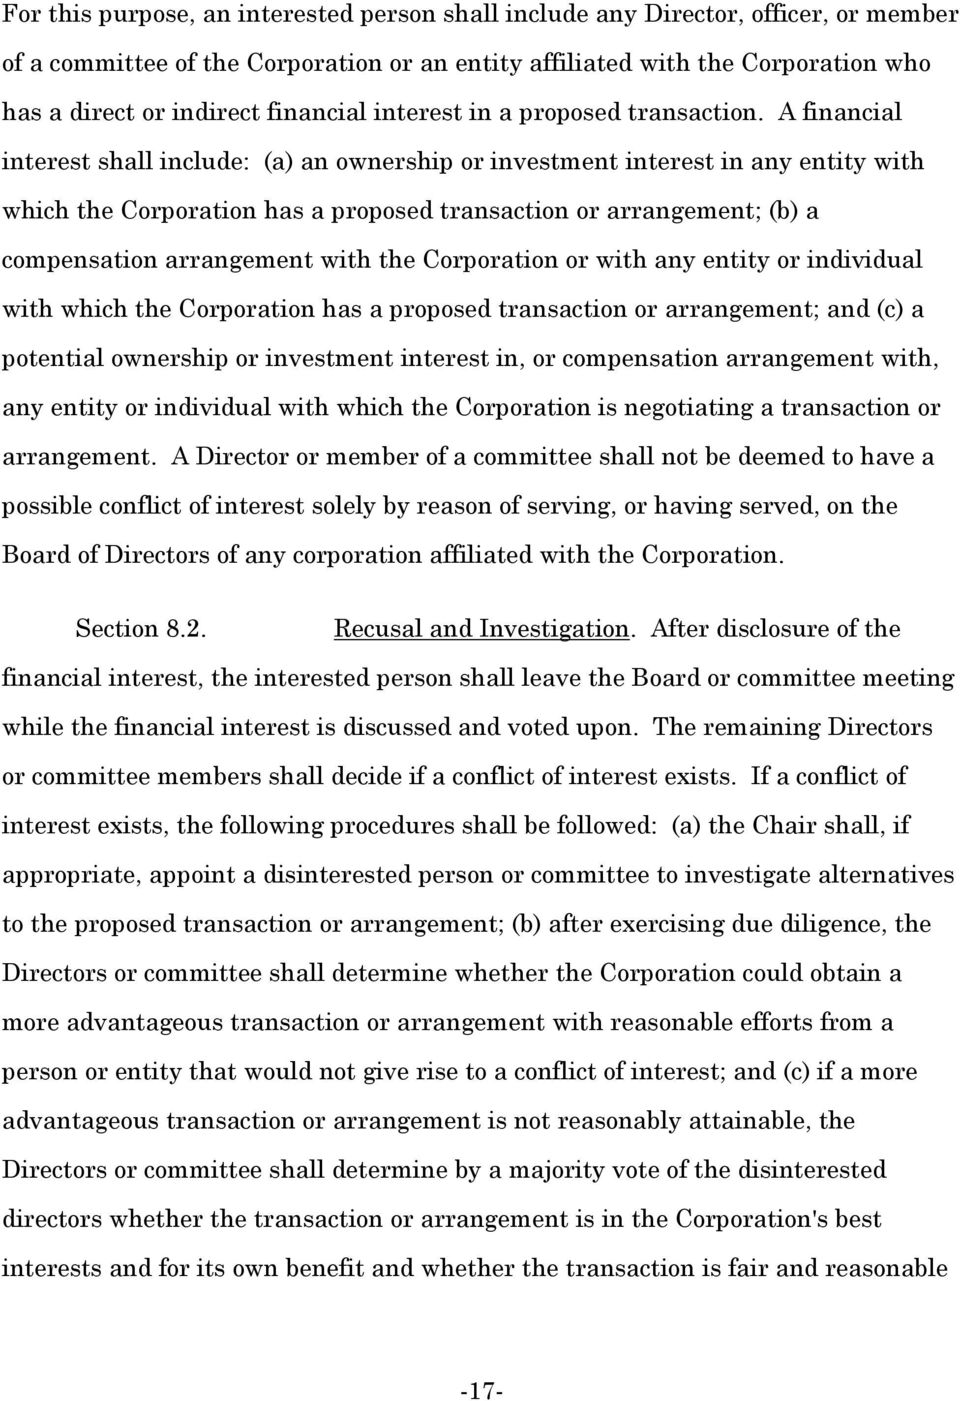 A financial interest shall include: (a) an ownership or investment interest in any entity with which the Corporation has a proposed transaction or arrangement; (b) a compensation arrangement with the